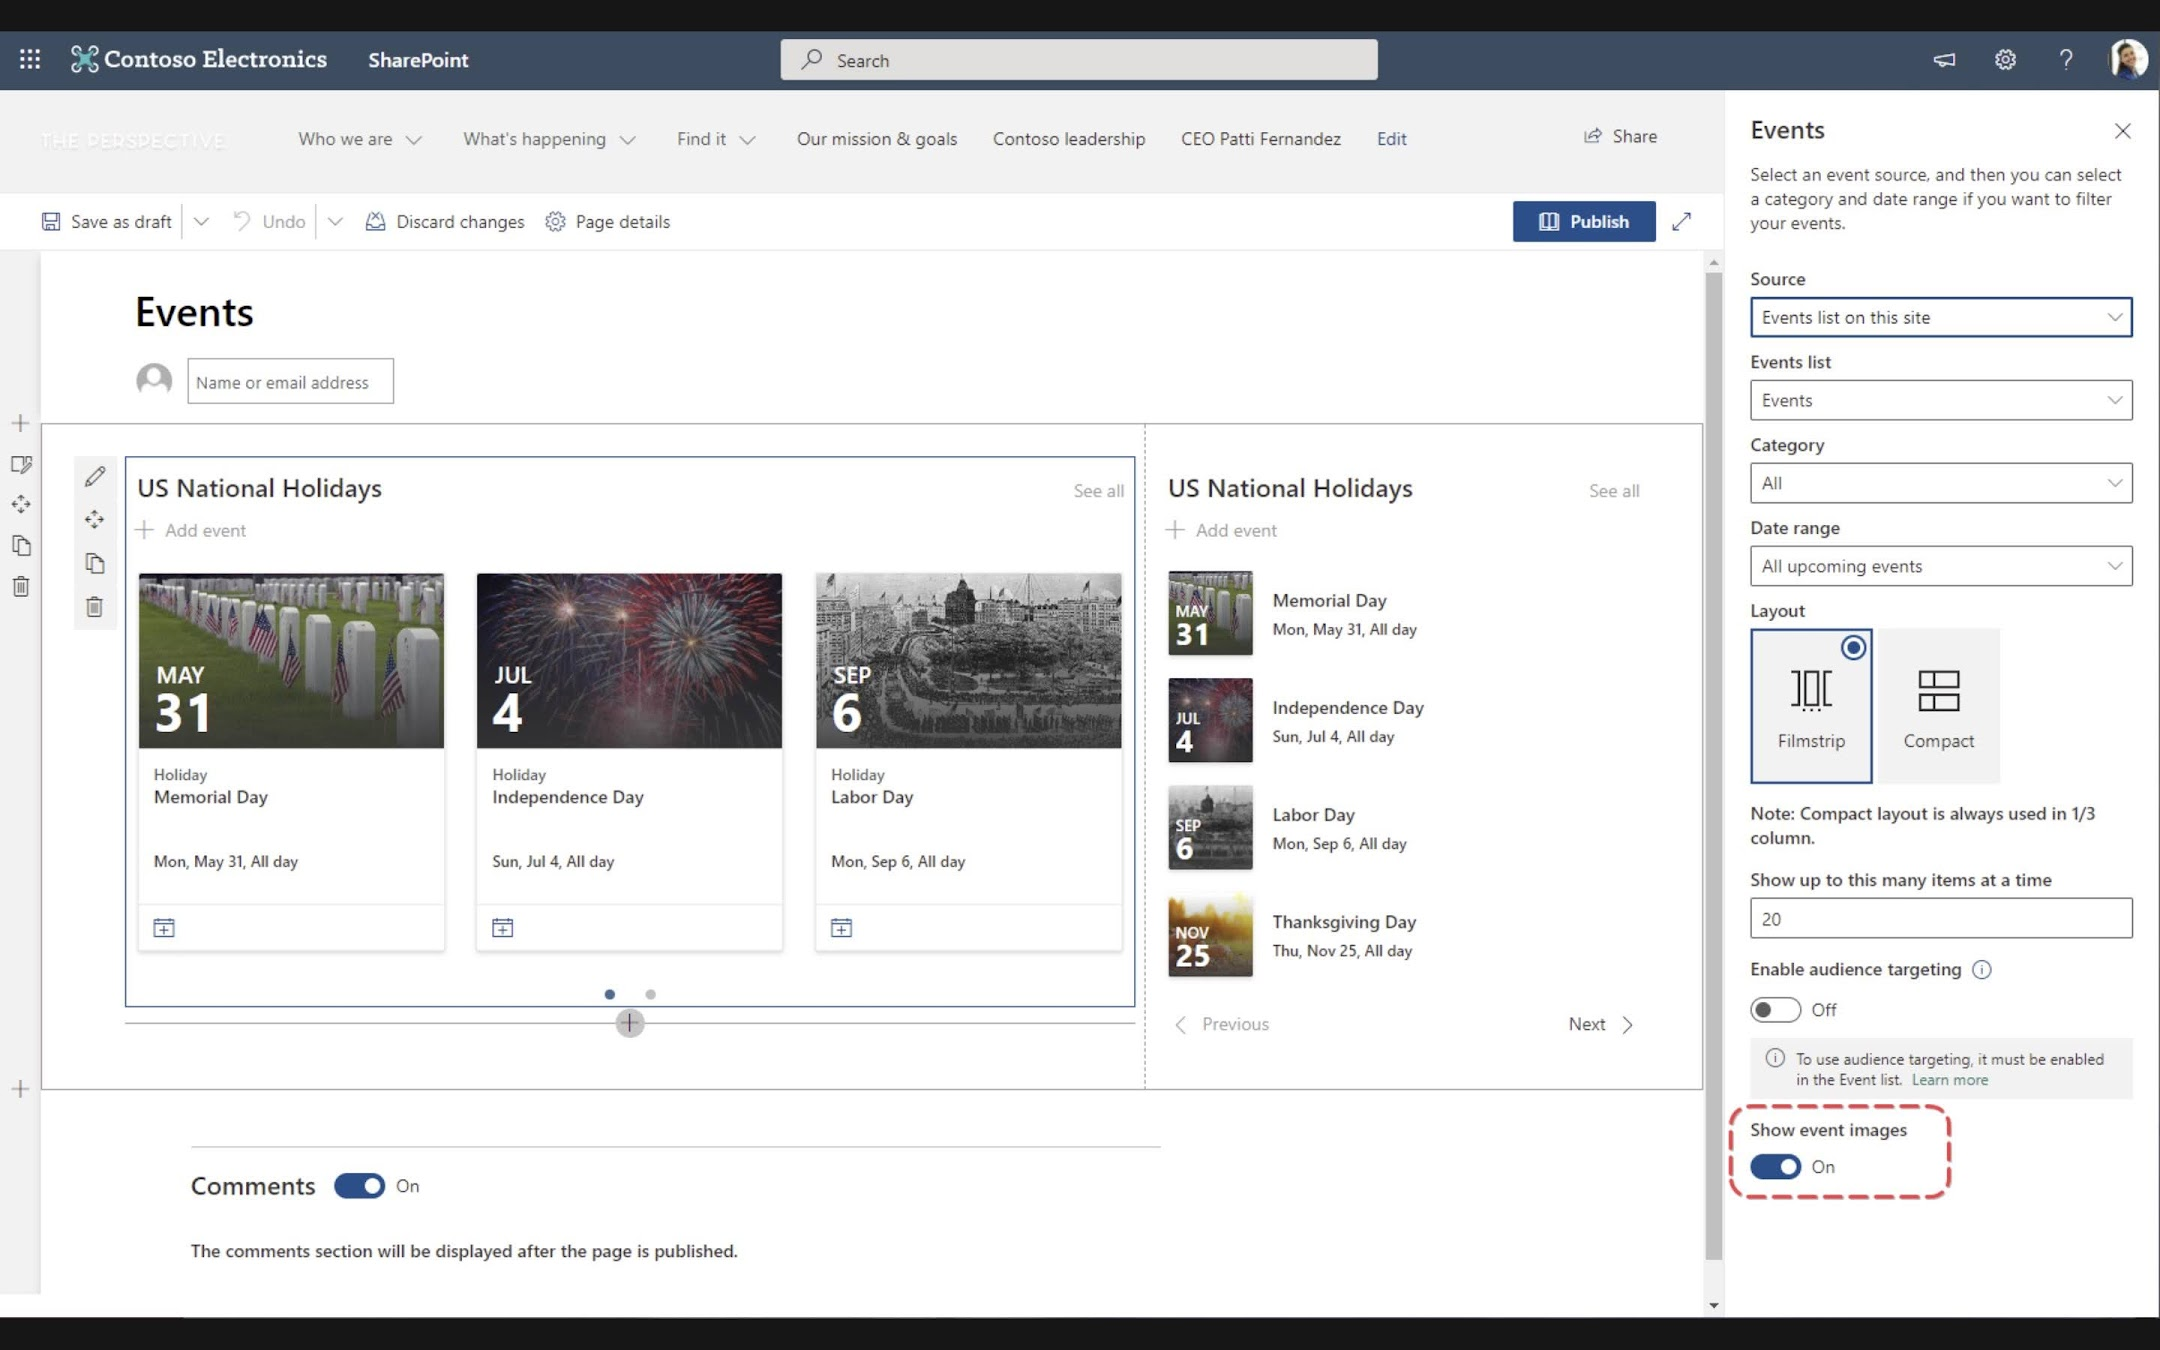 SharePoint page authors who use the Events web part can enable an option to show event images within the web part. When enabled, each Event shown in the web part will display the image used in the title area of the Event page.